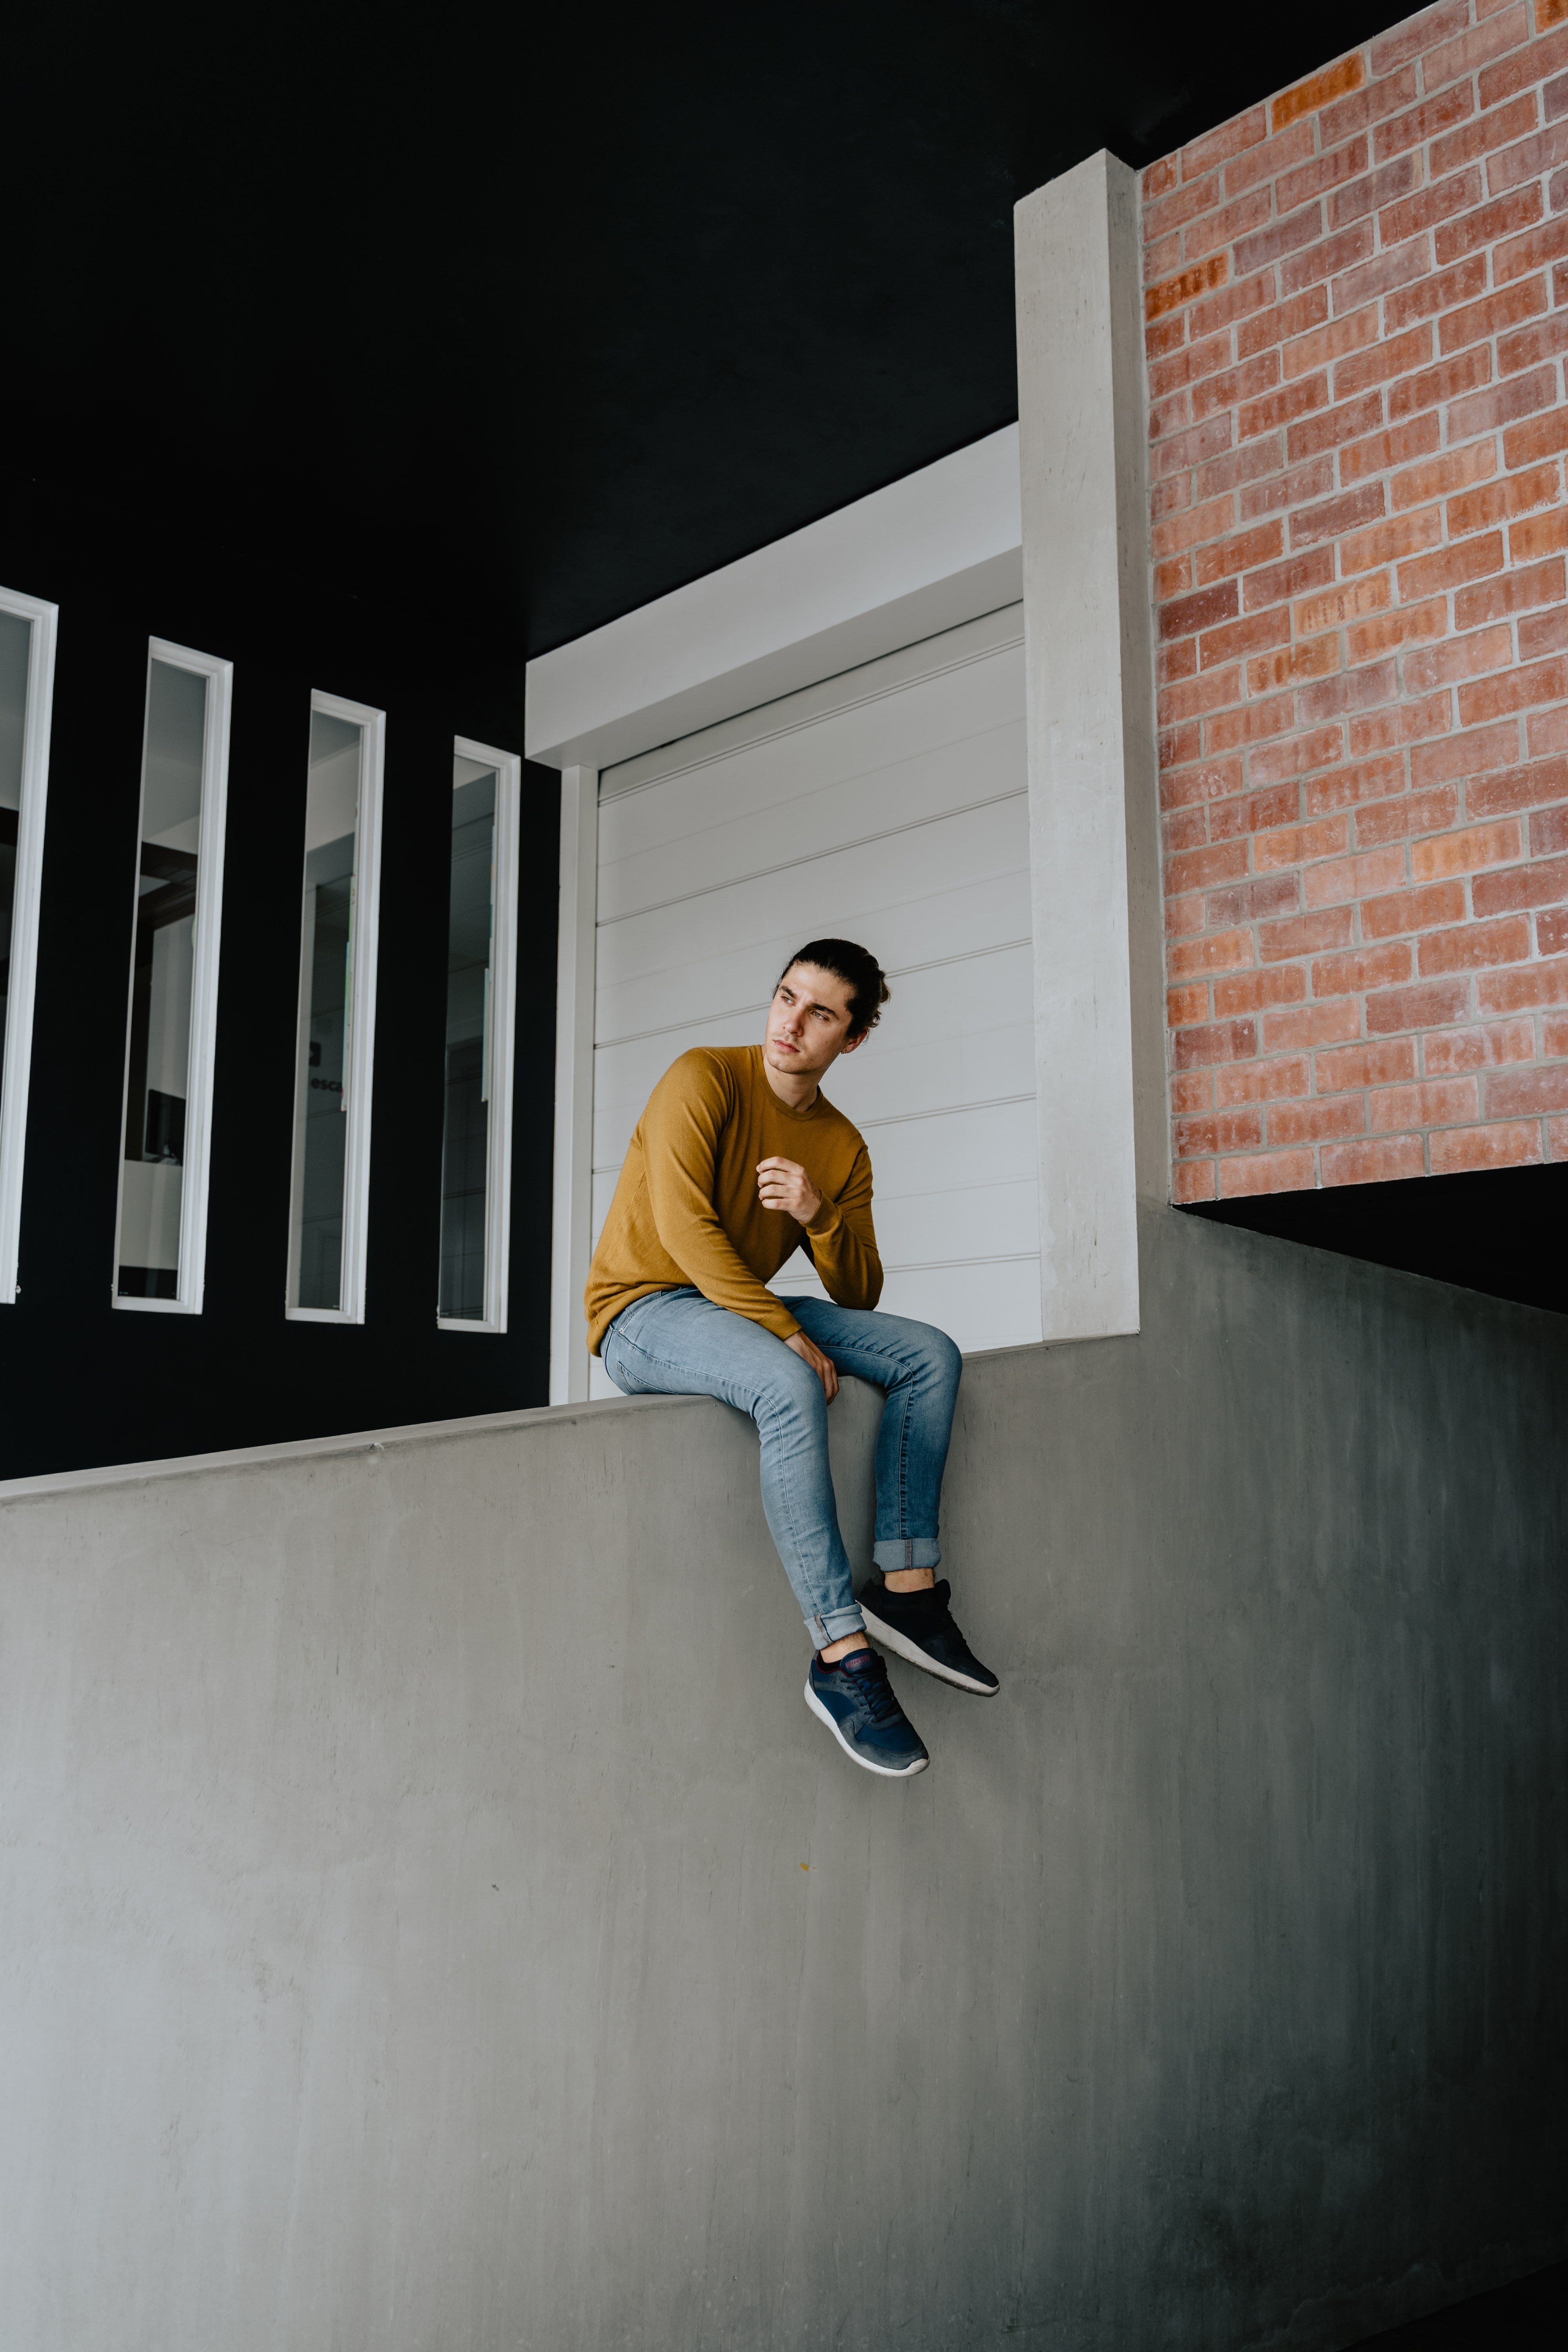 man sitting on gray wall